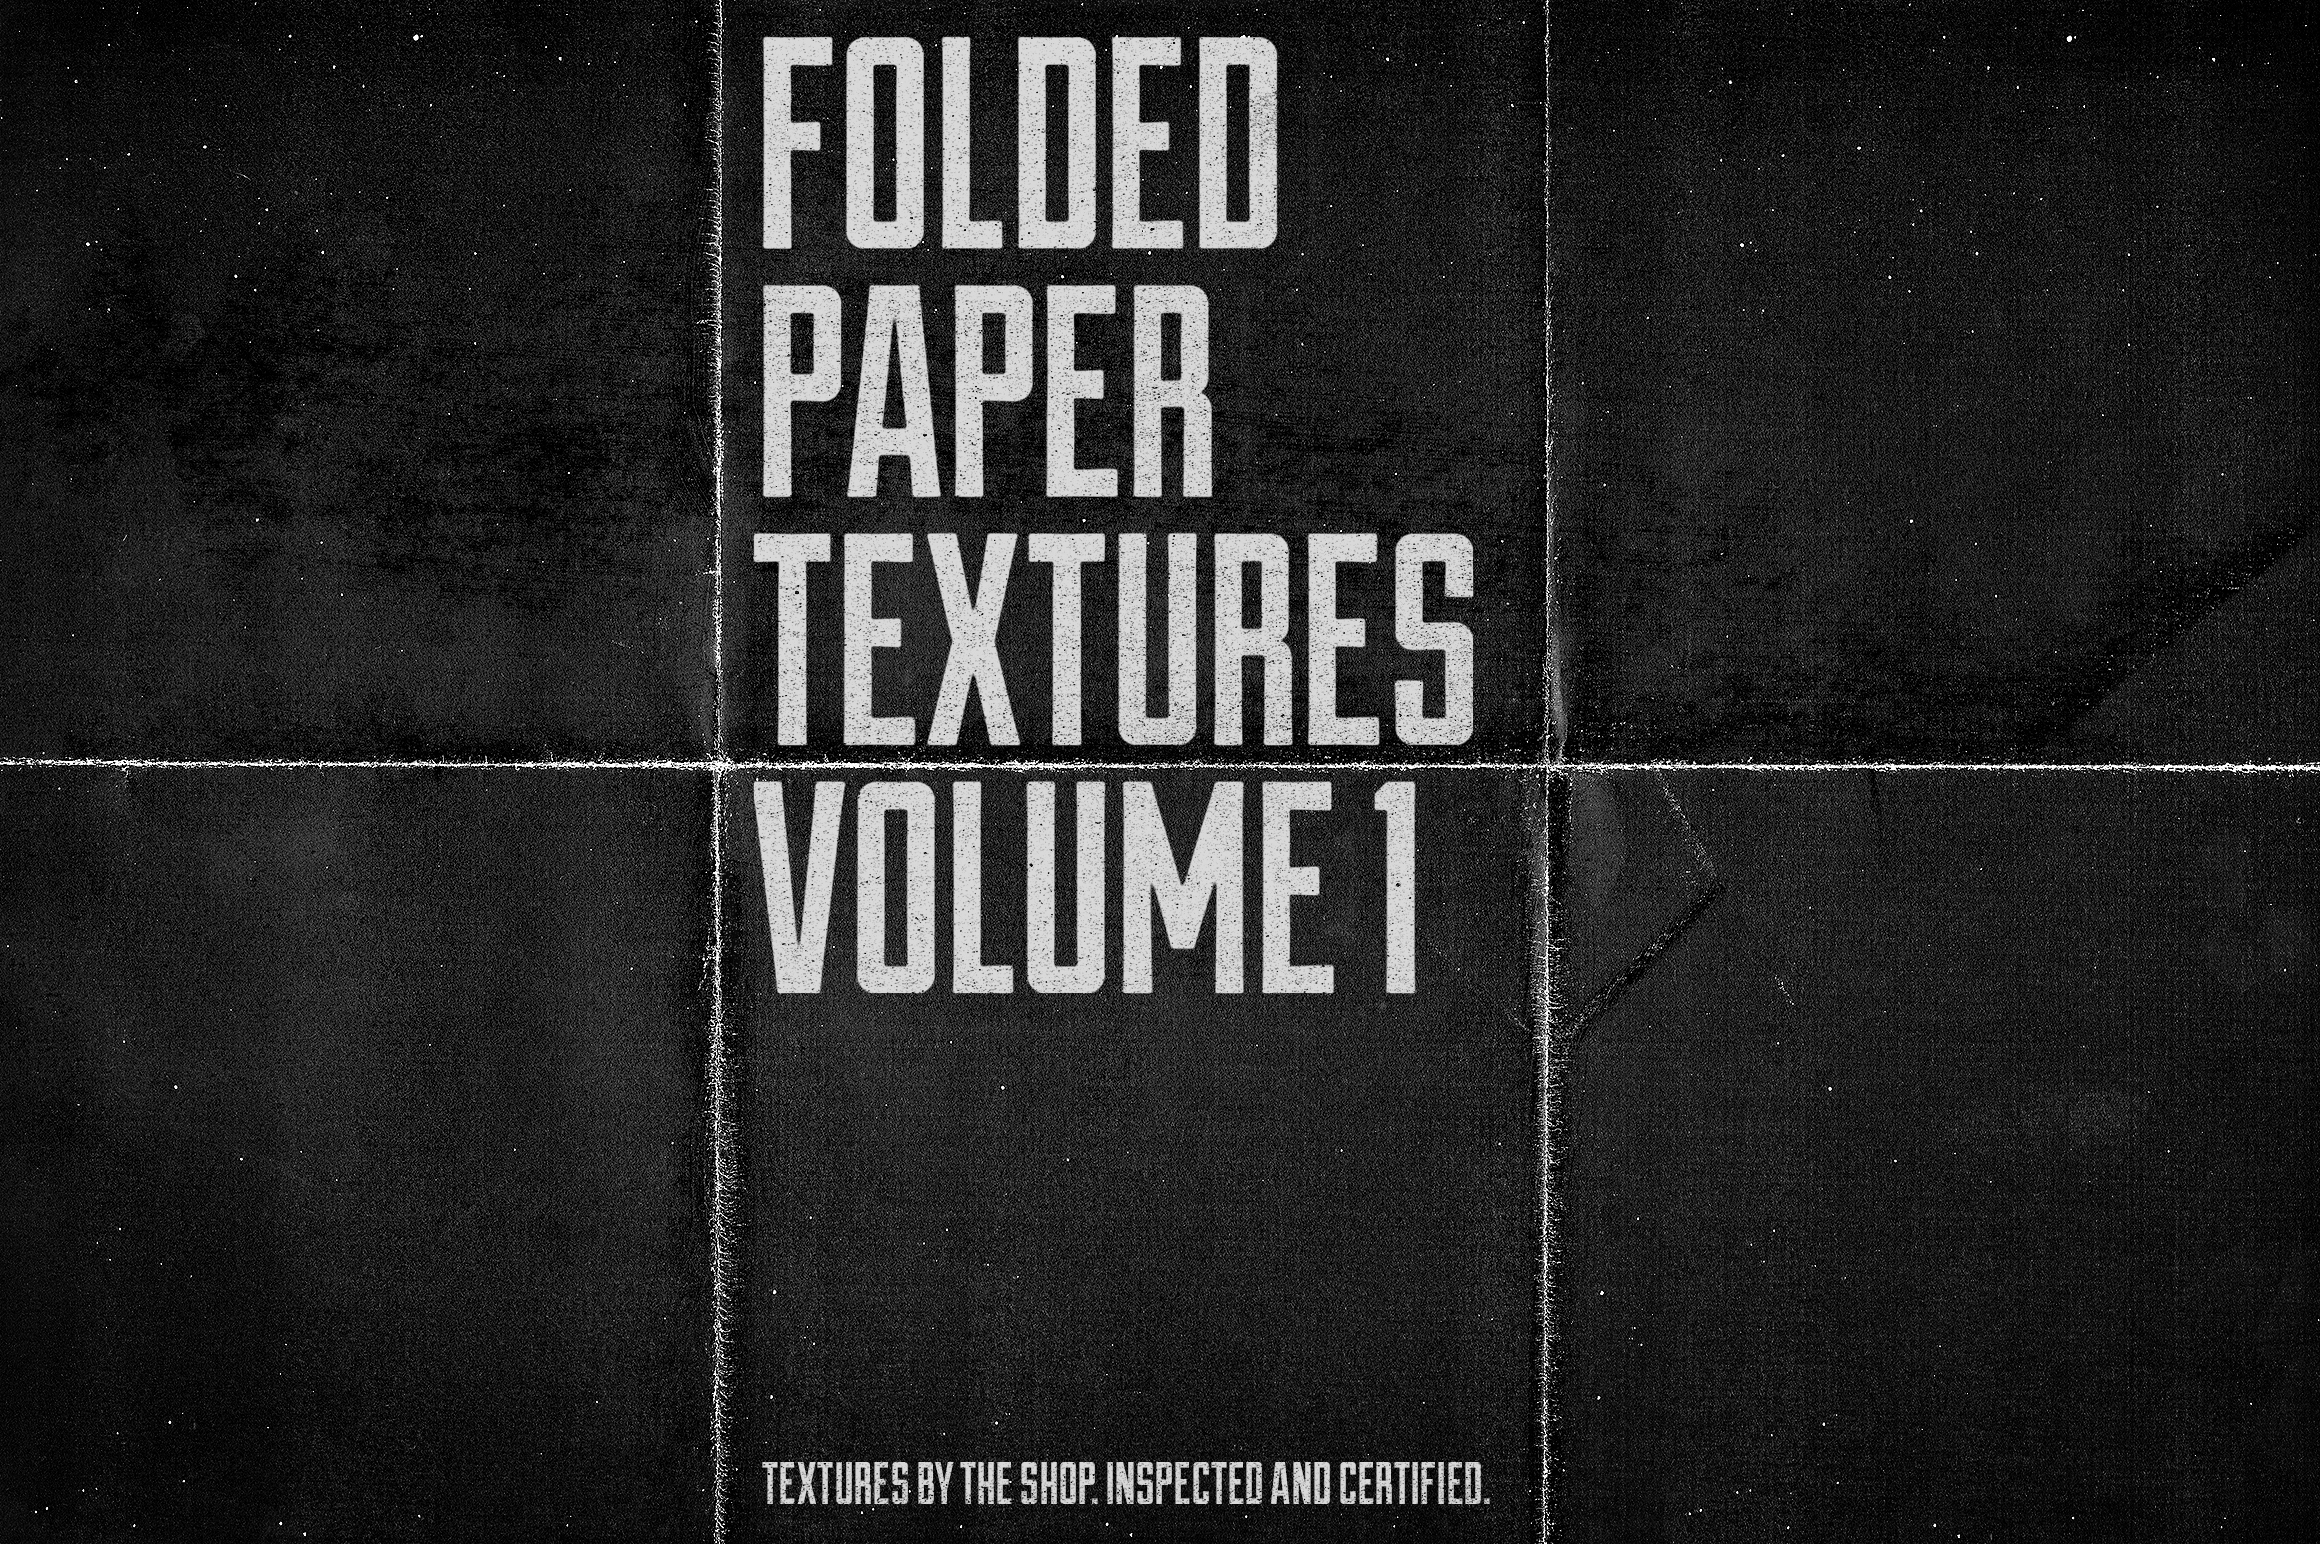 Folded Paper Textures Volume 01 Graphic Textures By theshopdesignstudio - Image 1